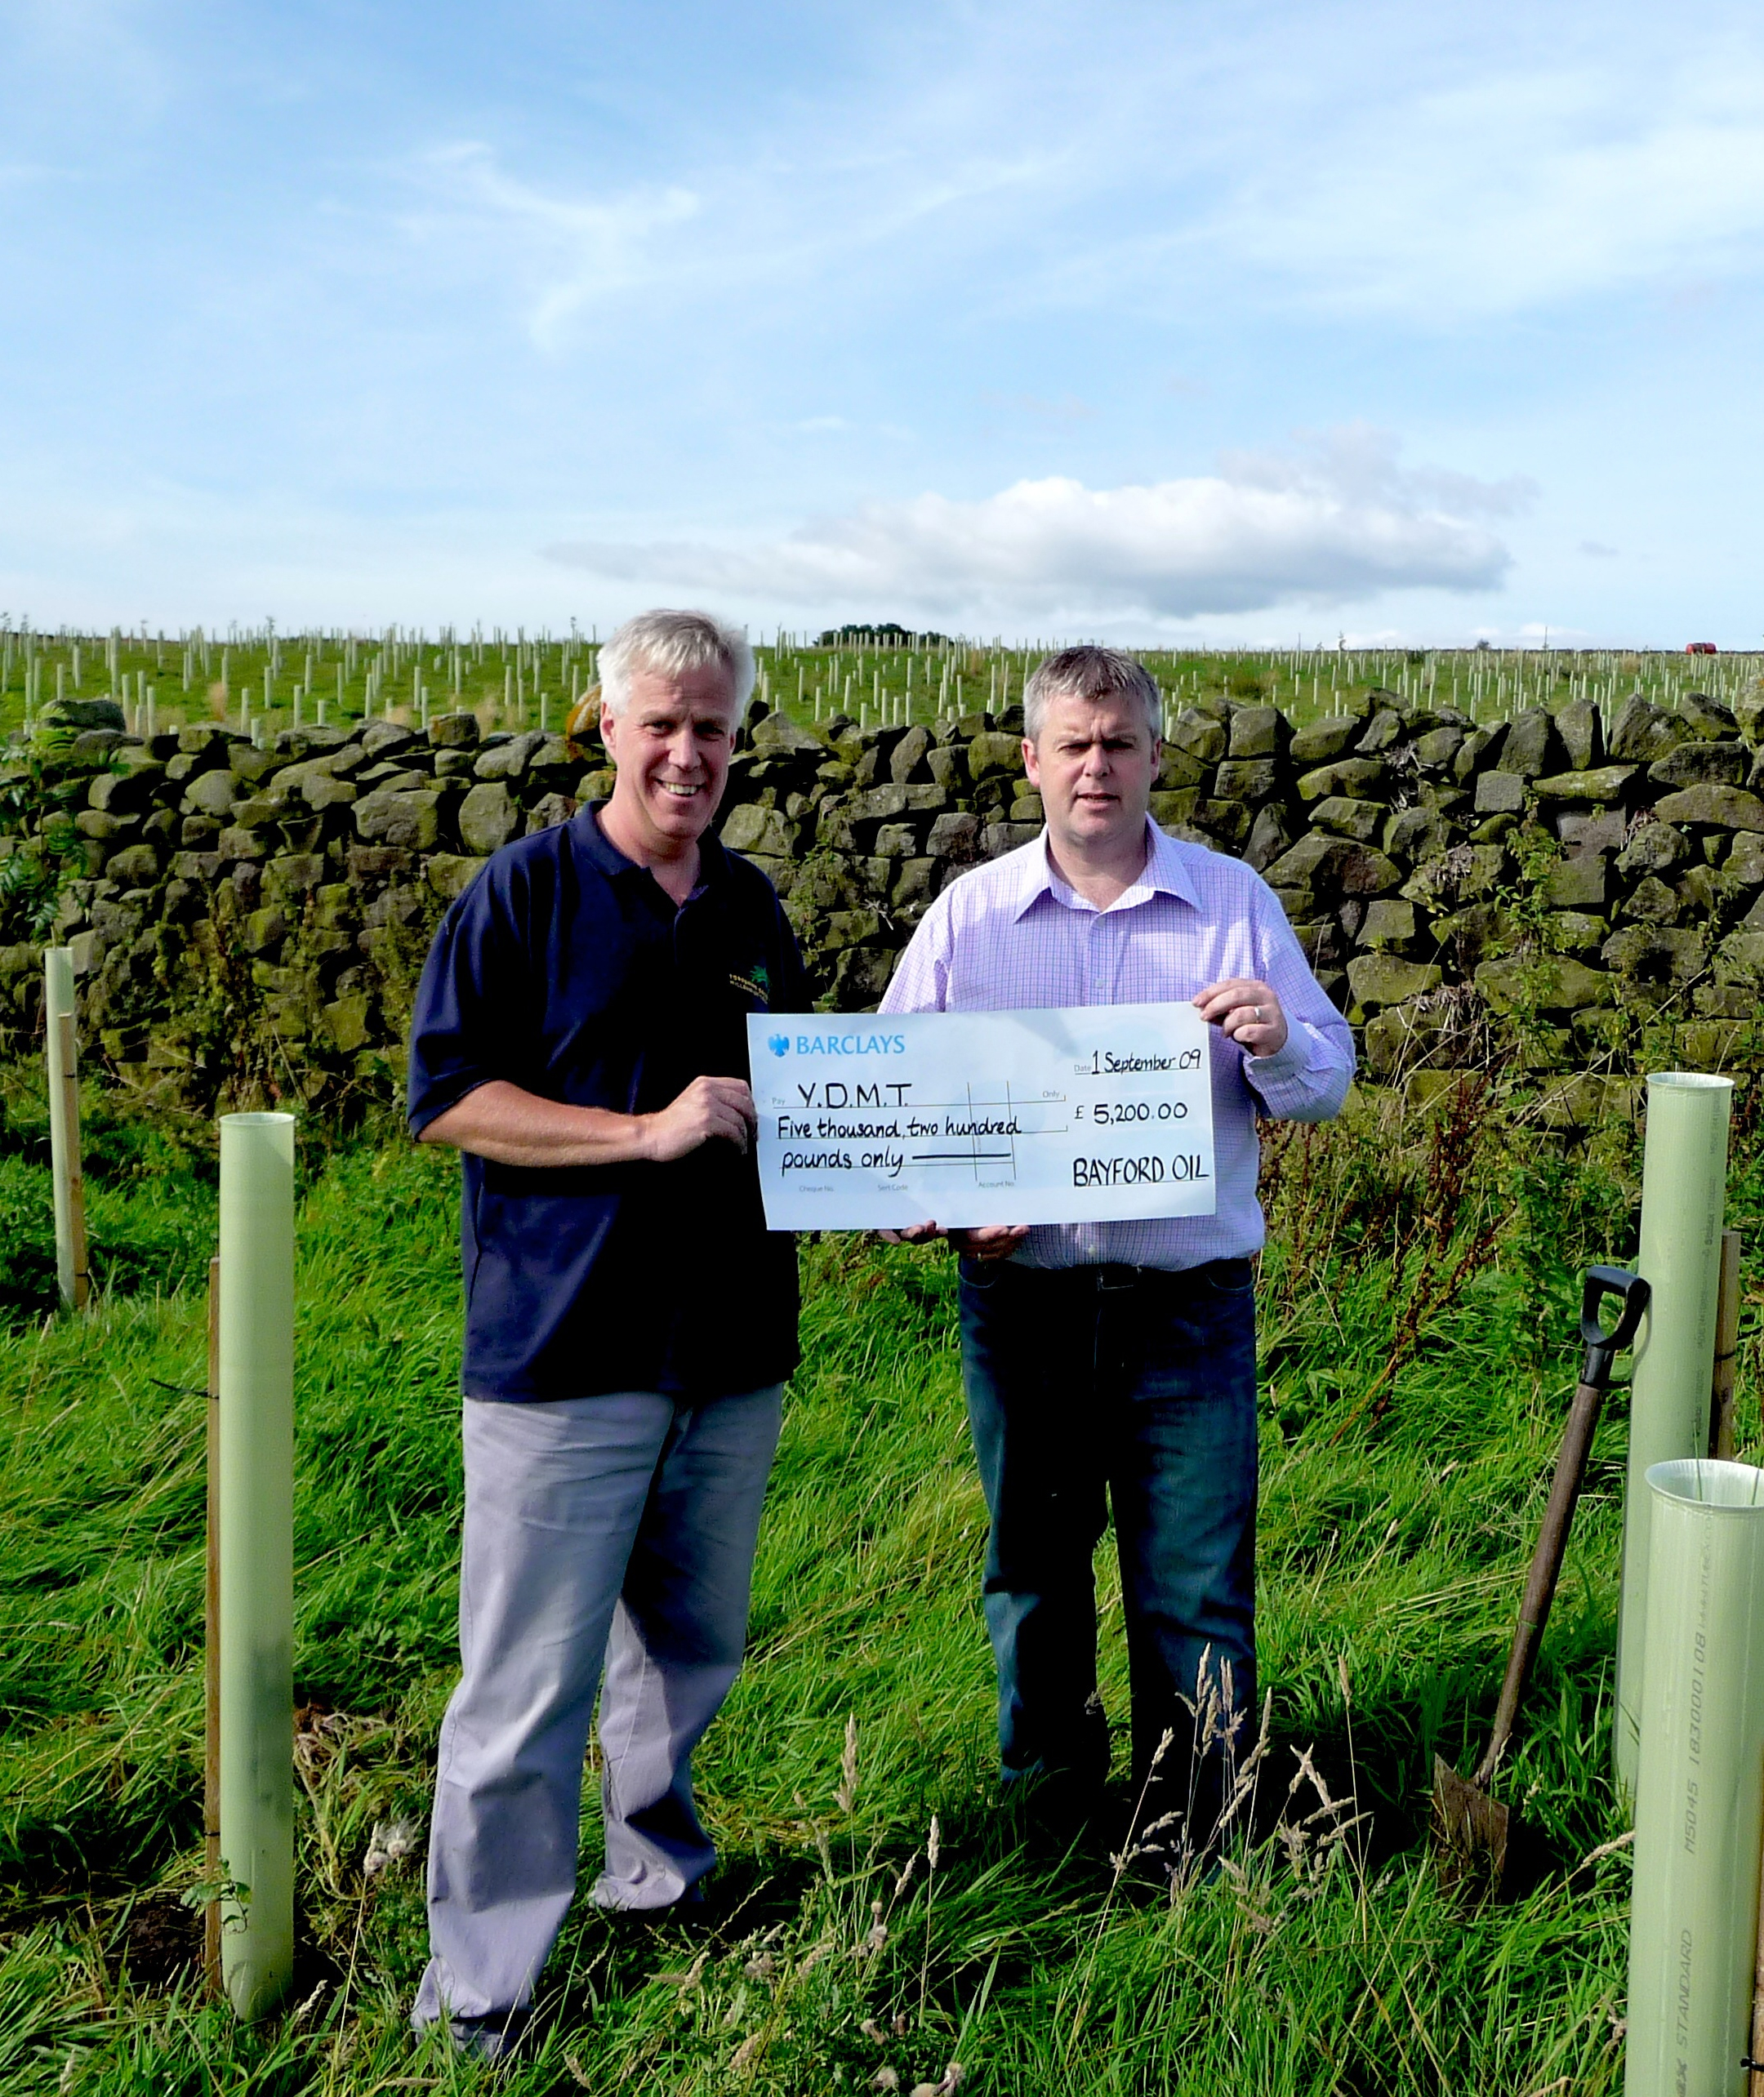 Rob Staines Director of Bayford (Right) presents giant cheque to our Director David Sharrod.